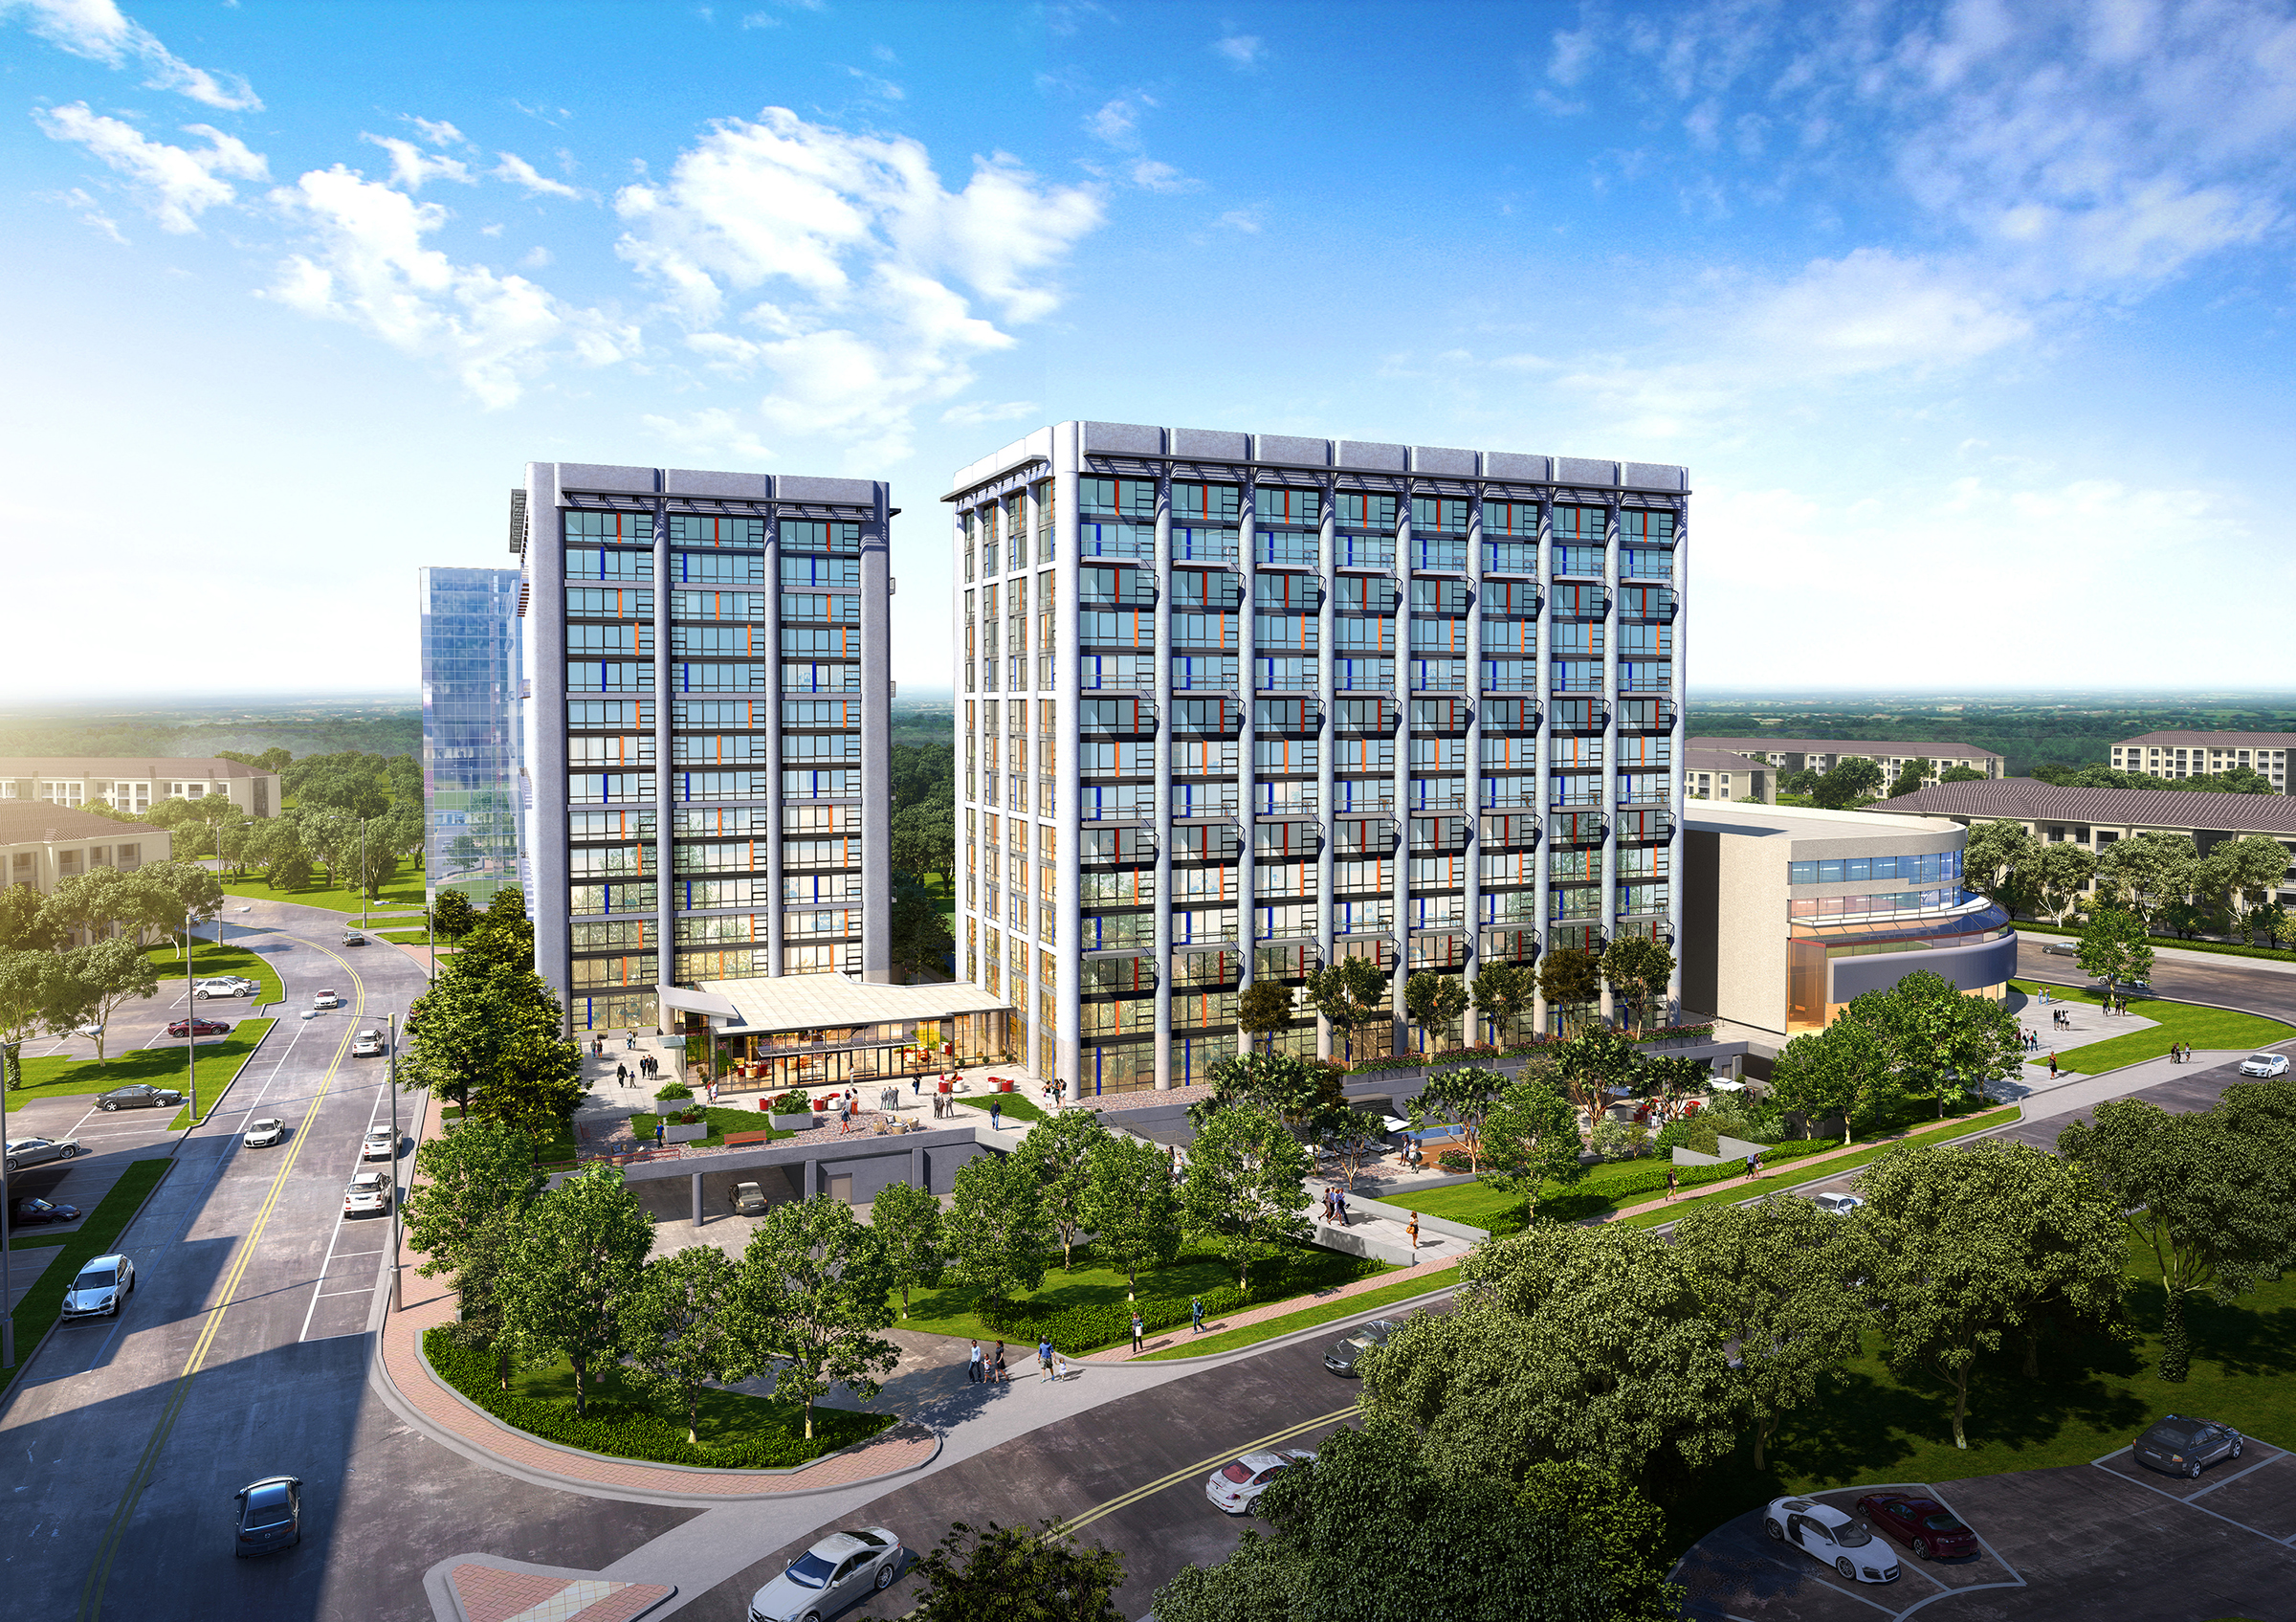 Lowe and USAA Real Estate Begin Construction of Park + Ford Adaptive Reuse of Two Former Office Buildings Into 435 Apartments